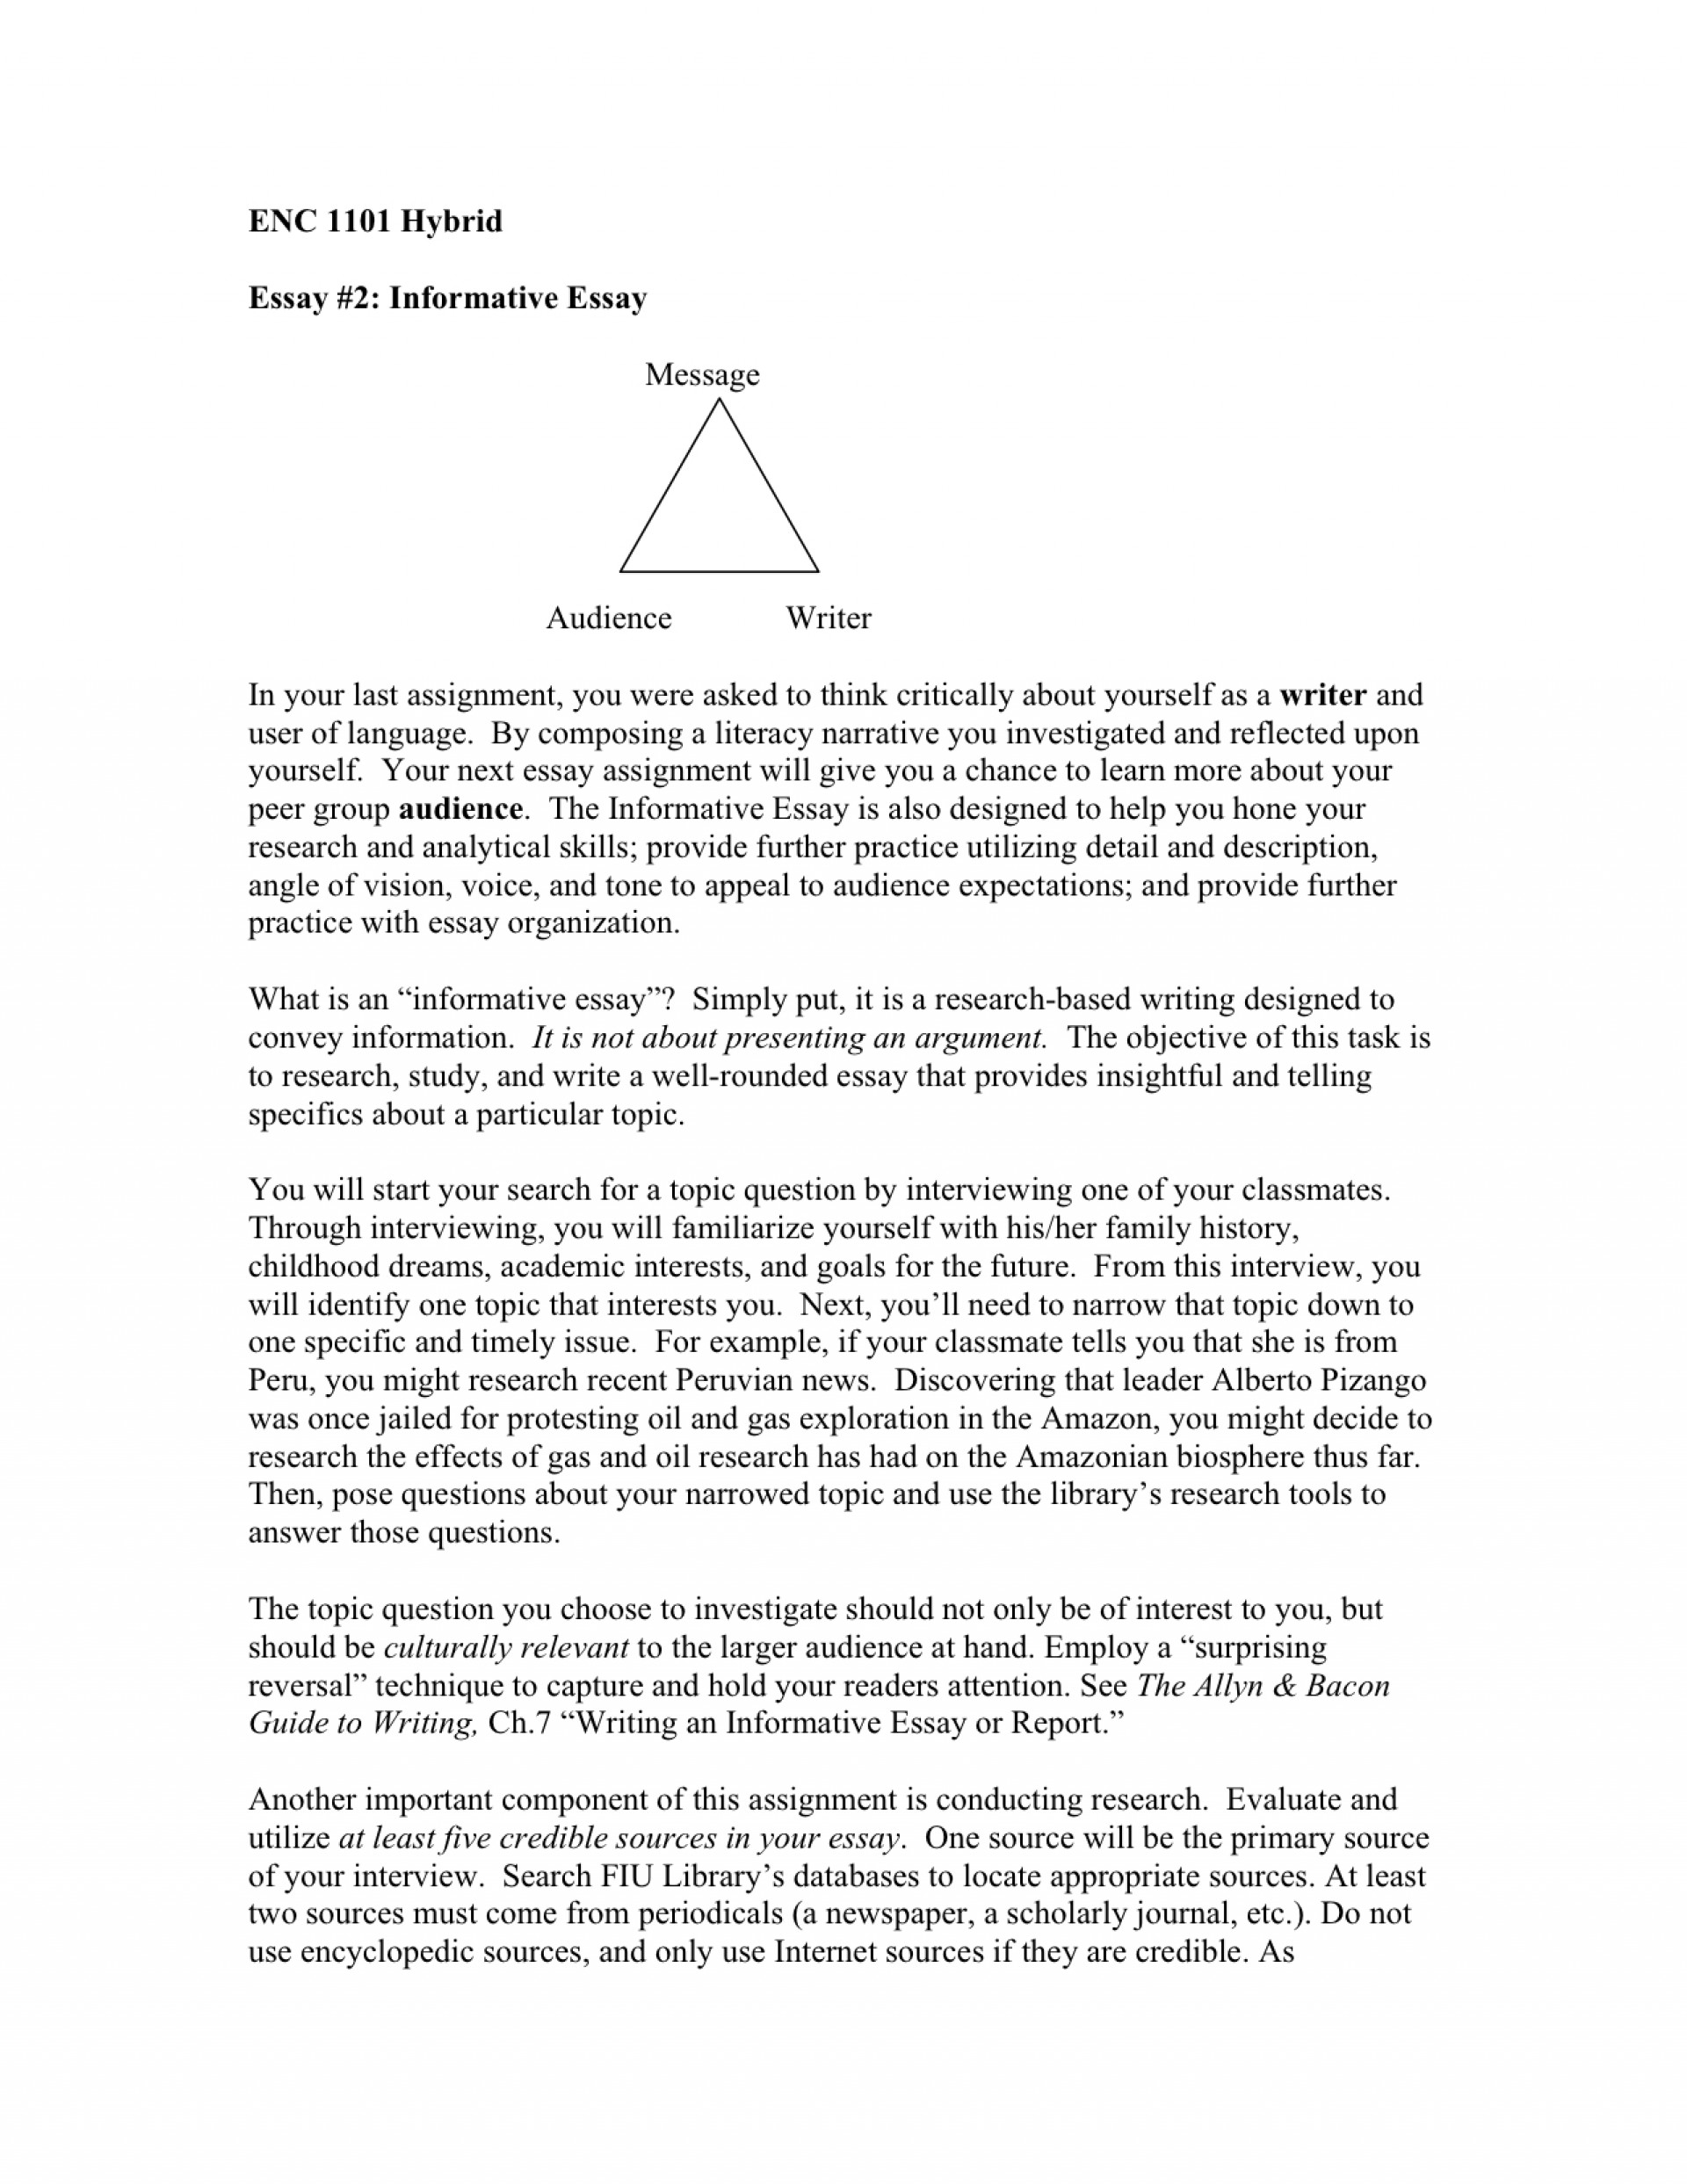 012 Informative Essay Example Wondrous Ideas Writing Prompts 5th Grade Common Core Expository 4th Pdf 1920